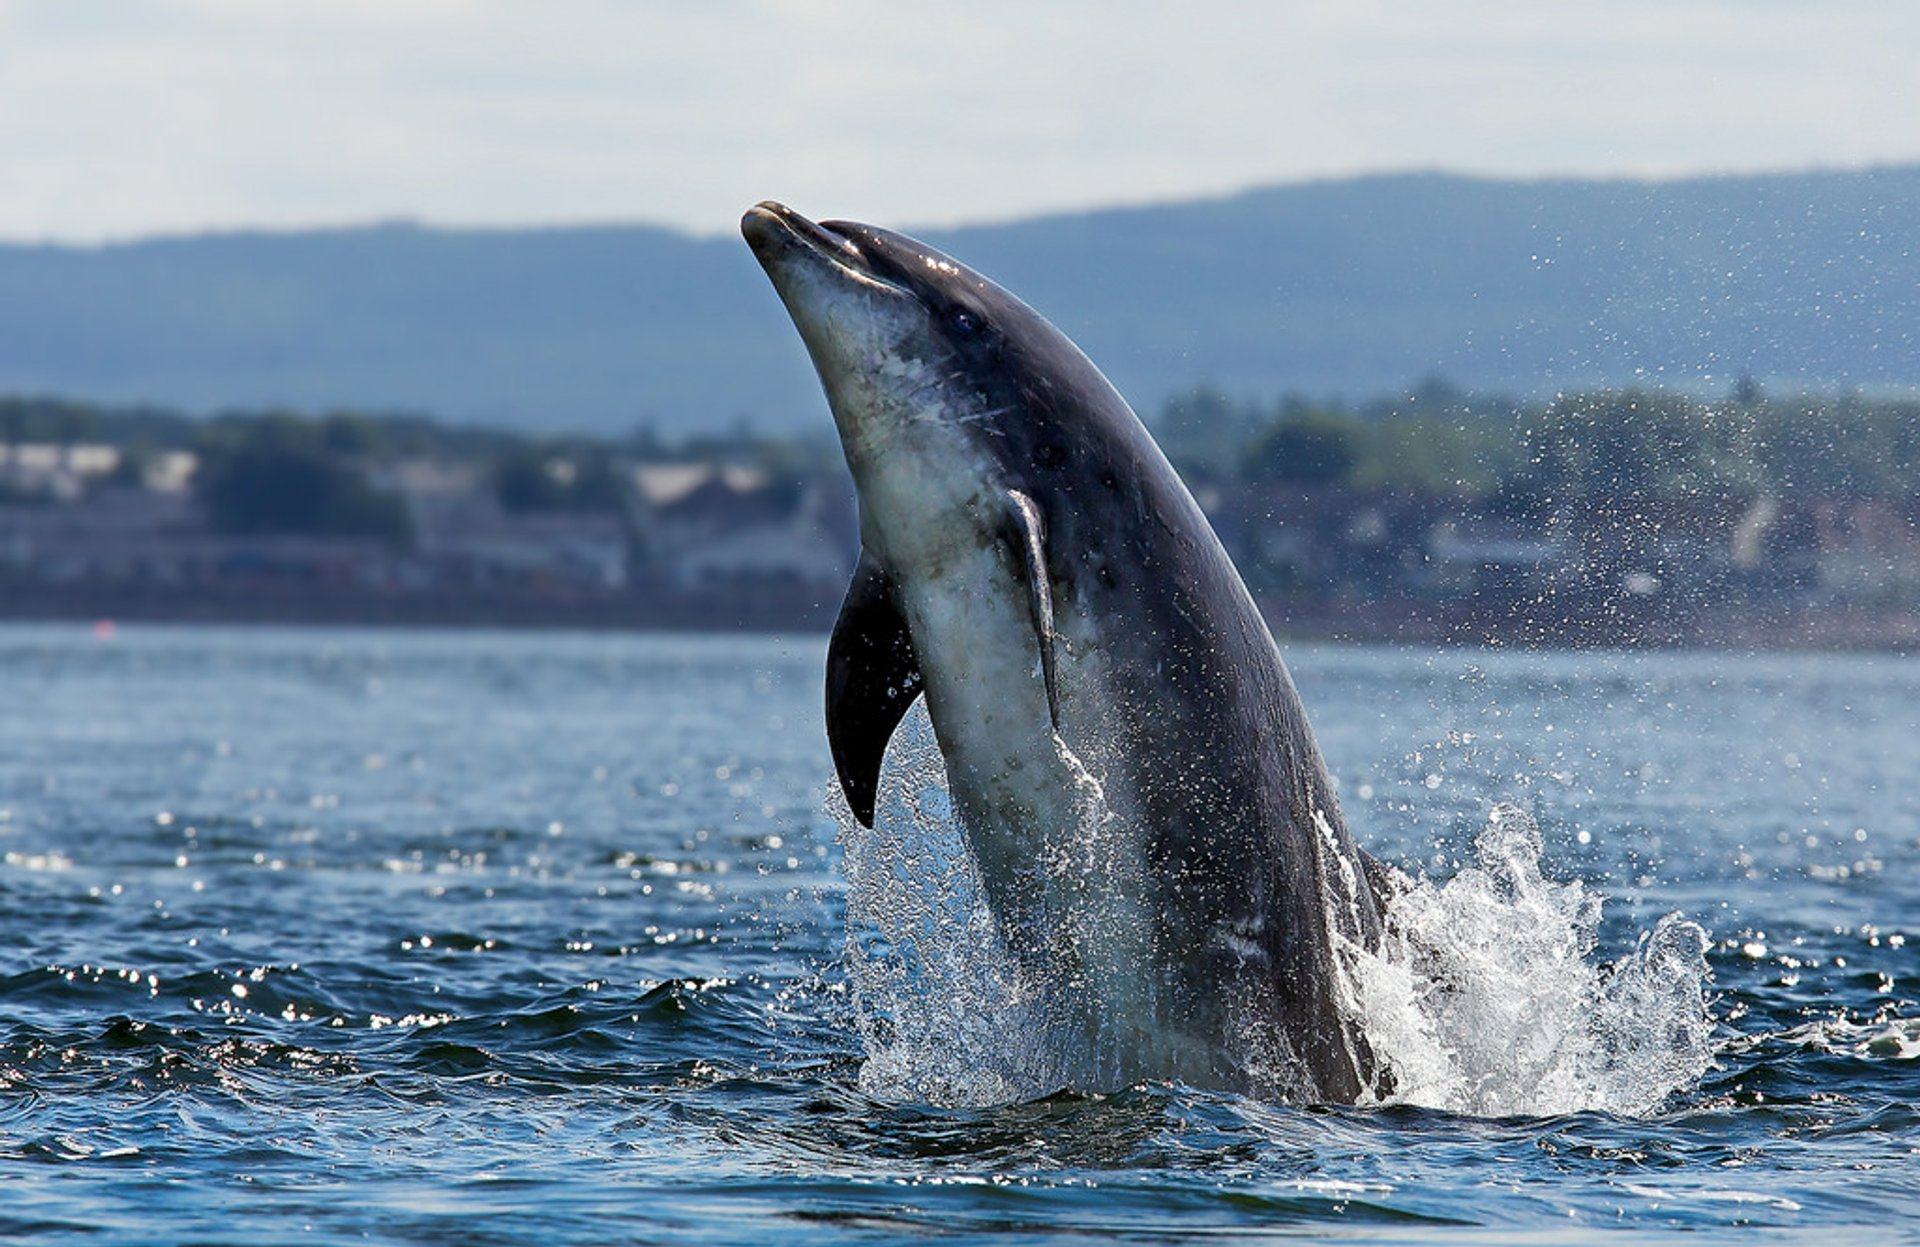 Dolphin at Chanonry point, Scotland 2019